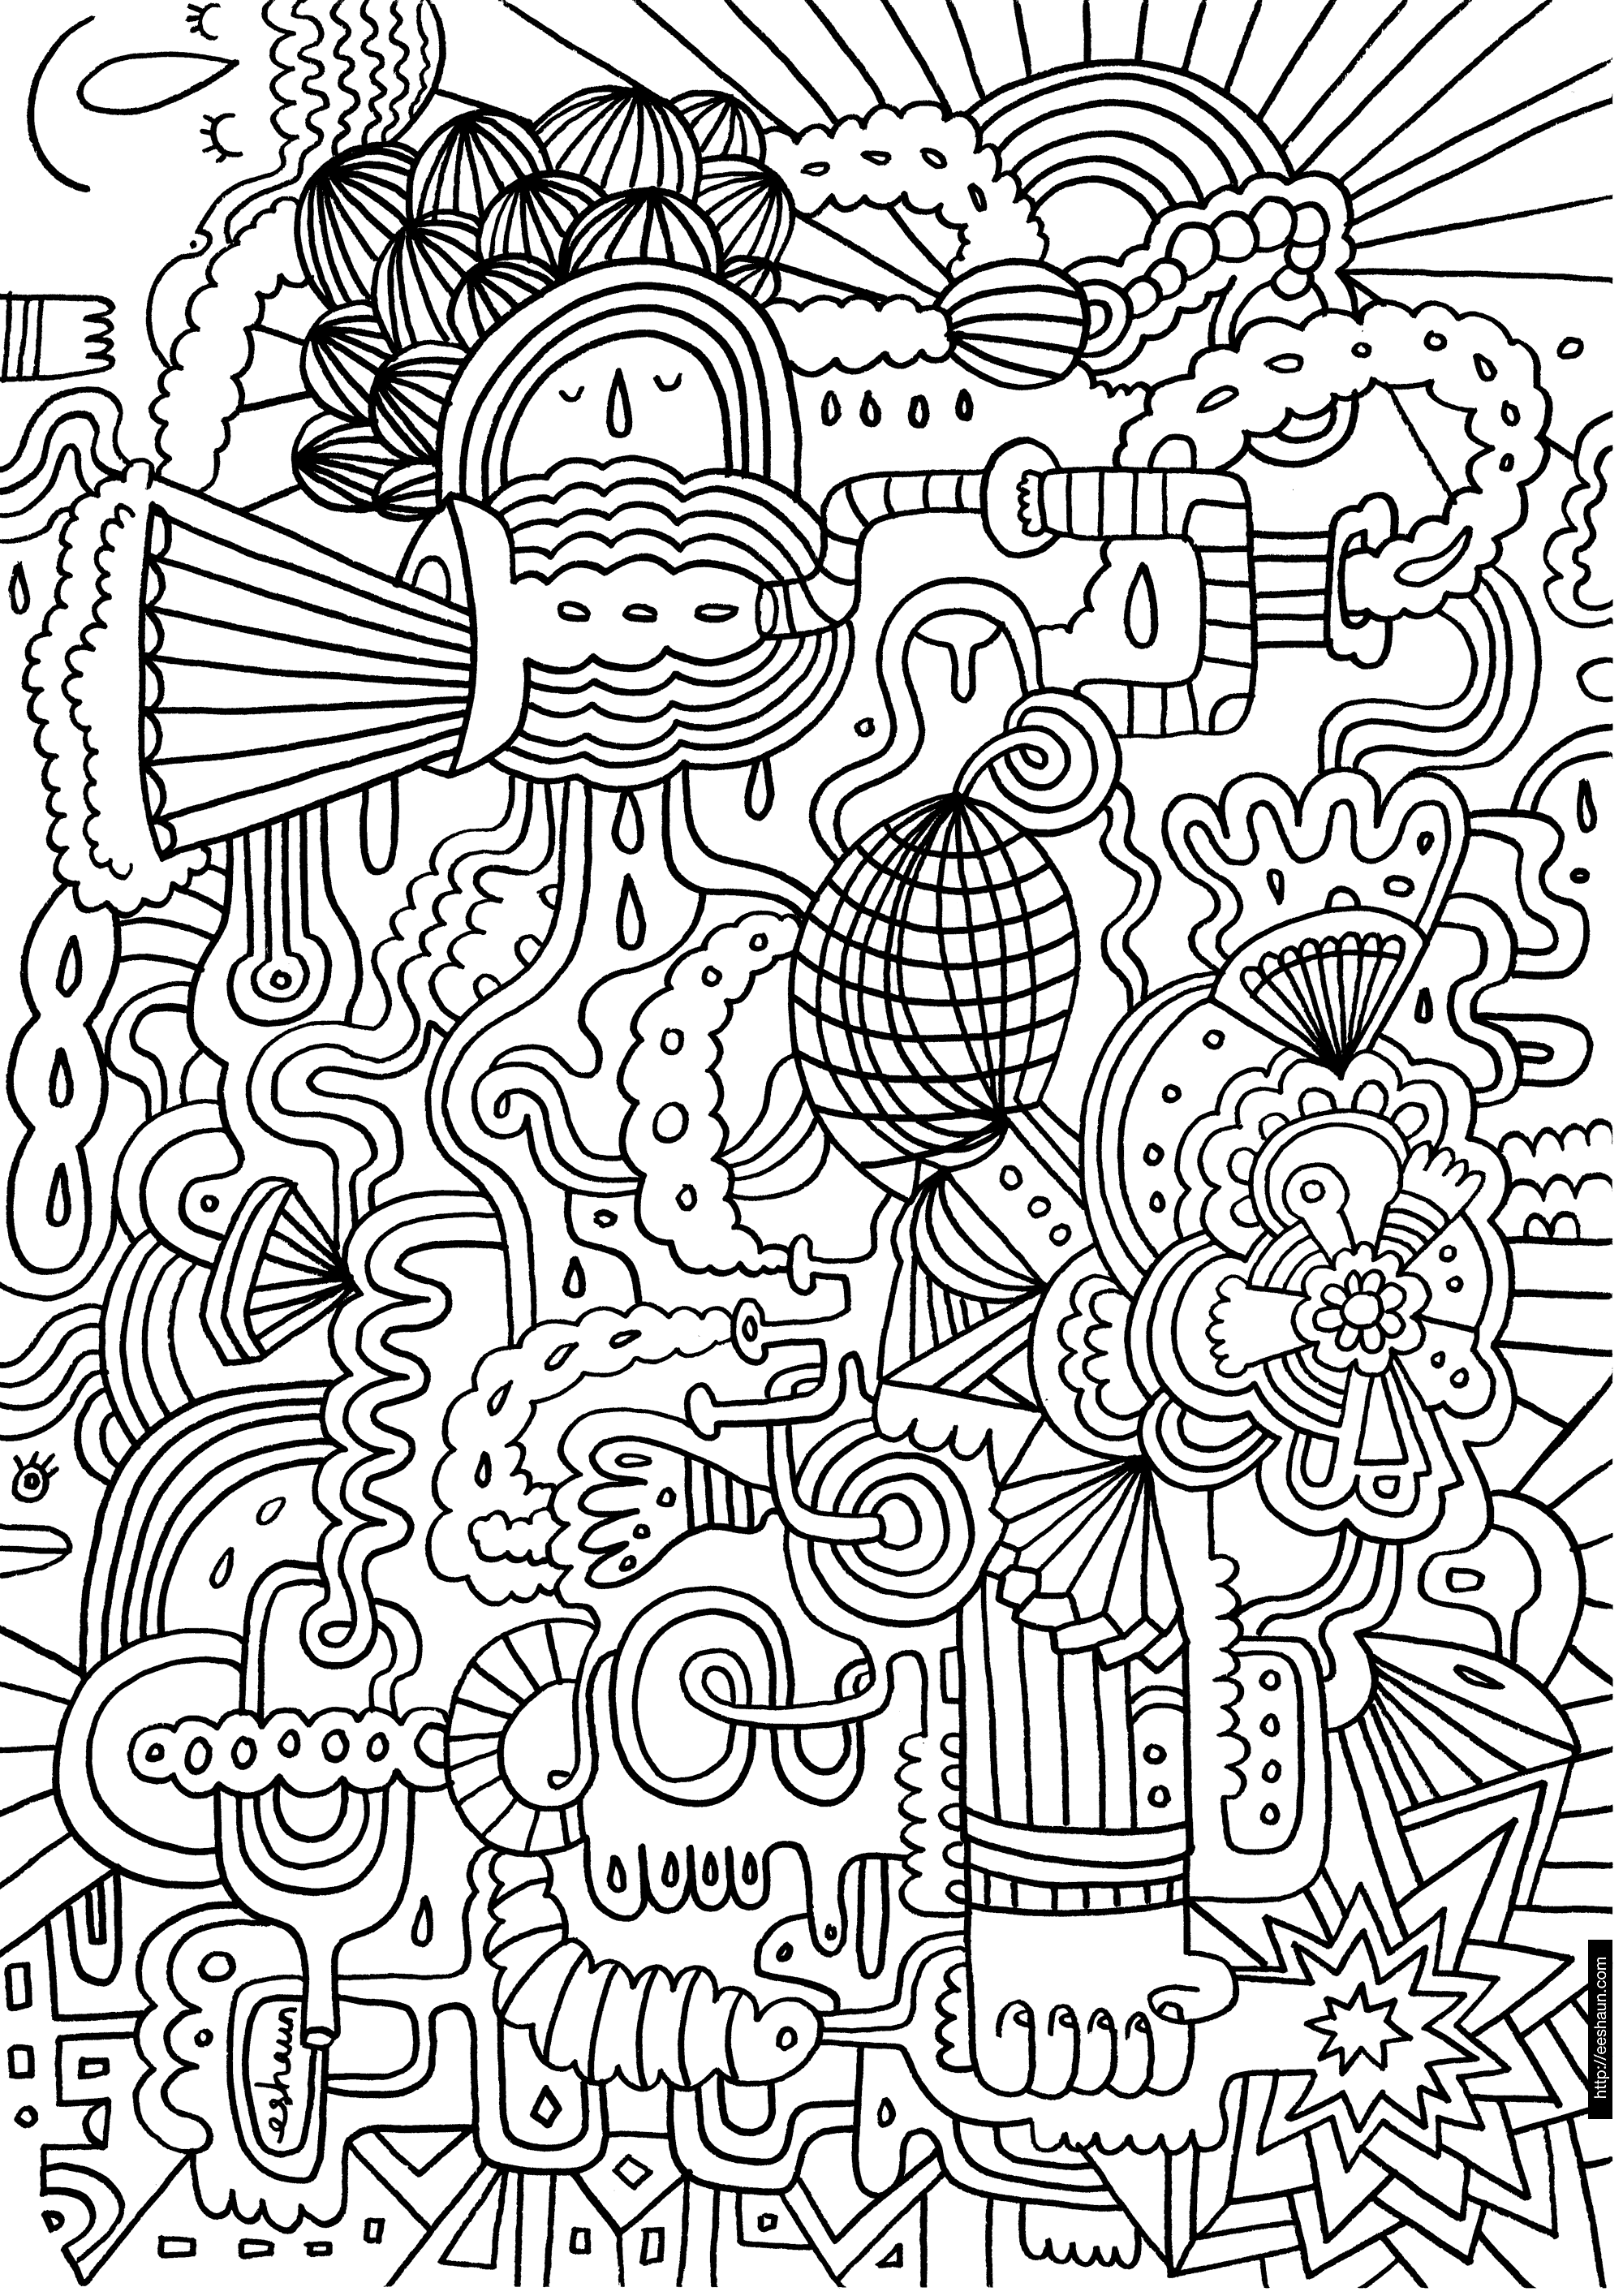 hard coloring pages free large images - Hard Coloring Pages